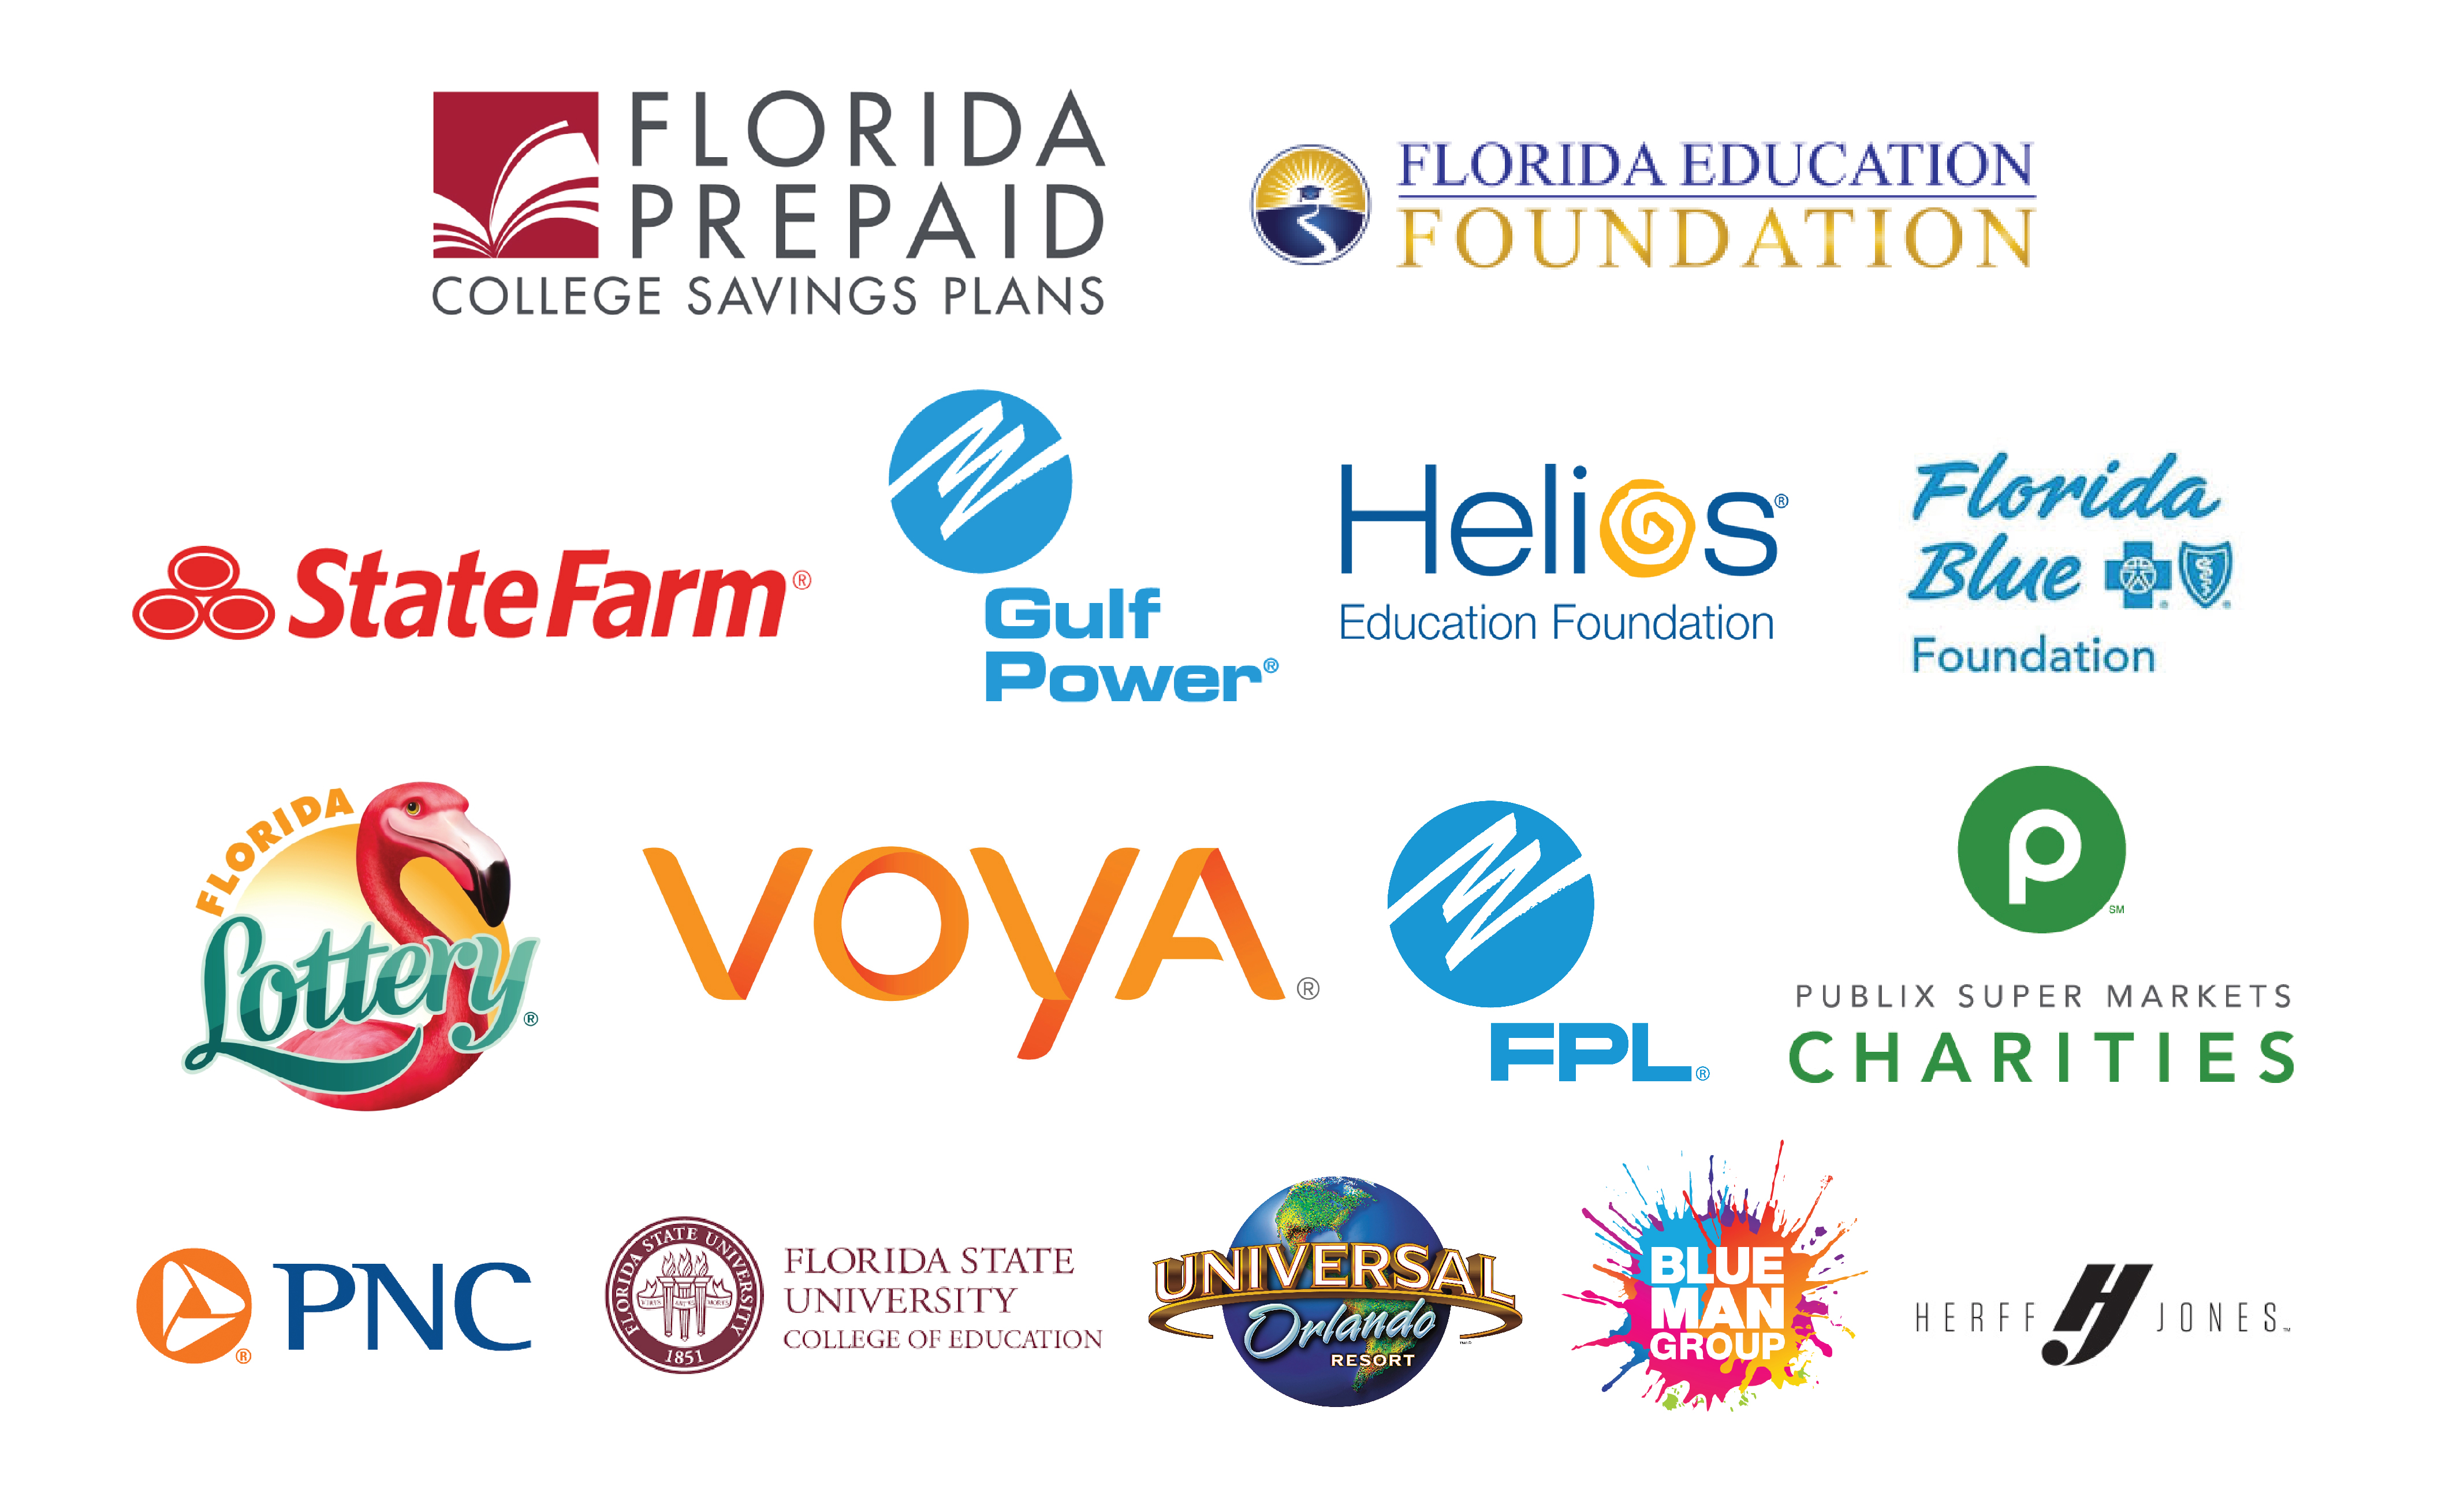 Recognition Sponsors: Florida Education Foundation, Florida Prepaid College Foundation, Wells Fargo, Florida Blue, State Farm, Florida Lottery, Helios Education Foundation, Florida Power and Light, Publix, Herff Jones, Universal Orlando